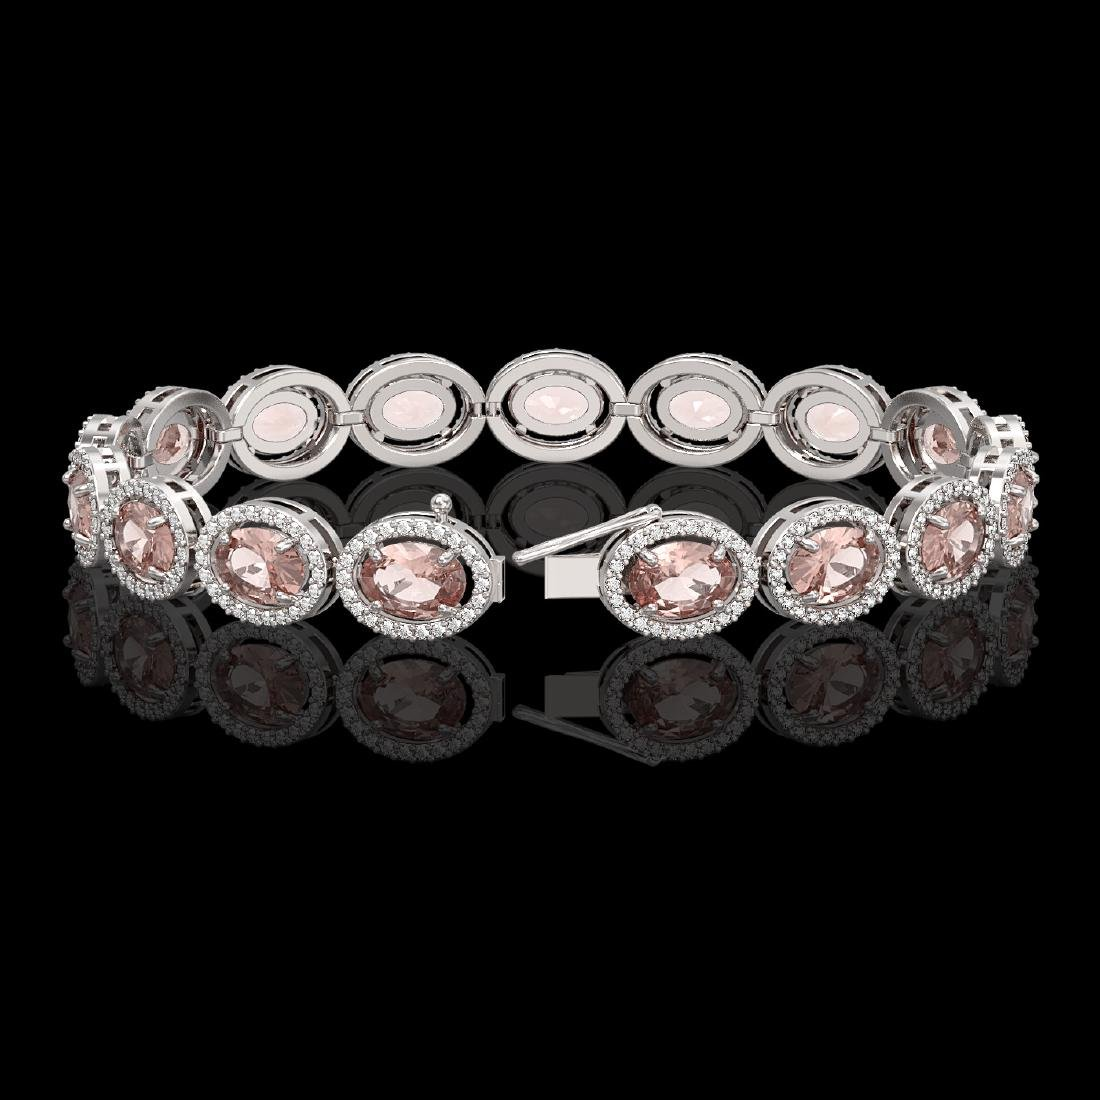 20.18 CTW Morganite & Diamond Halo Bracelet 10K White - 2